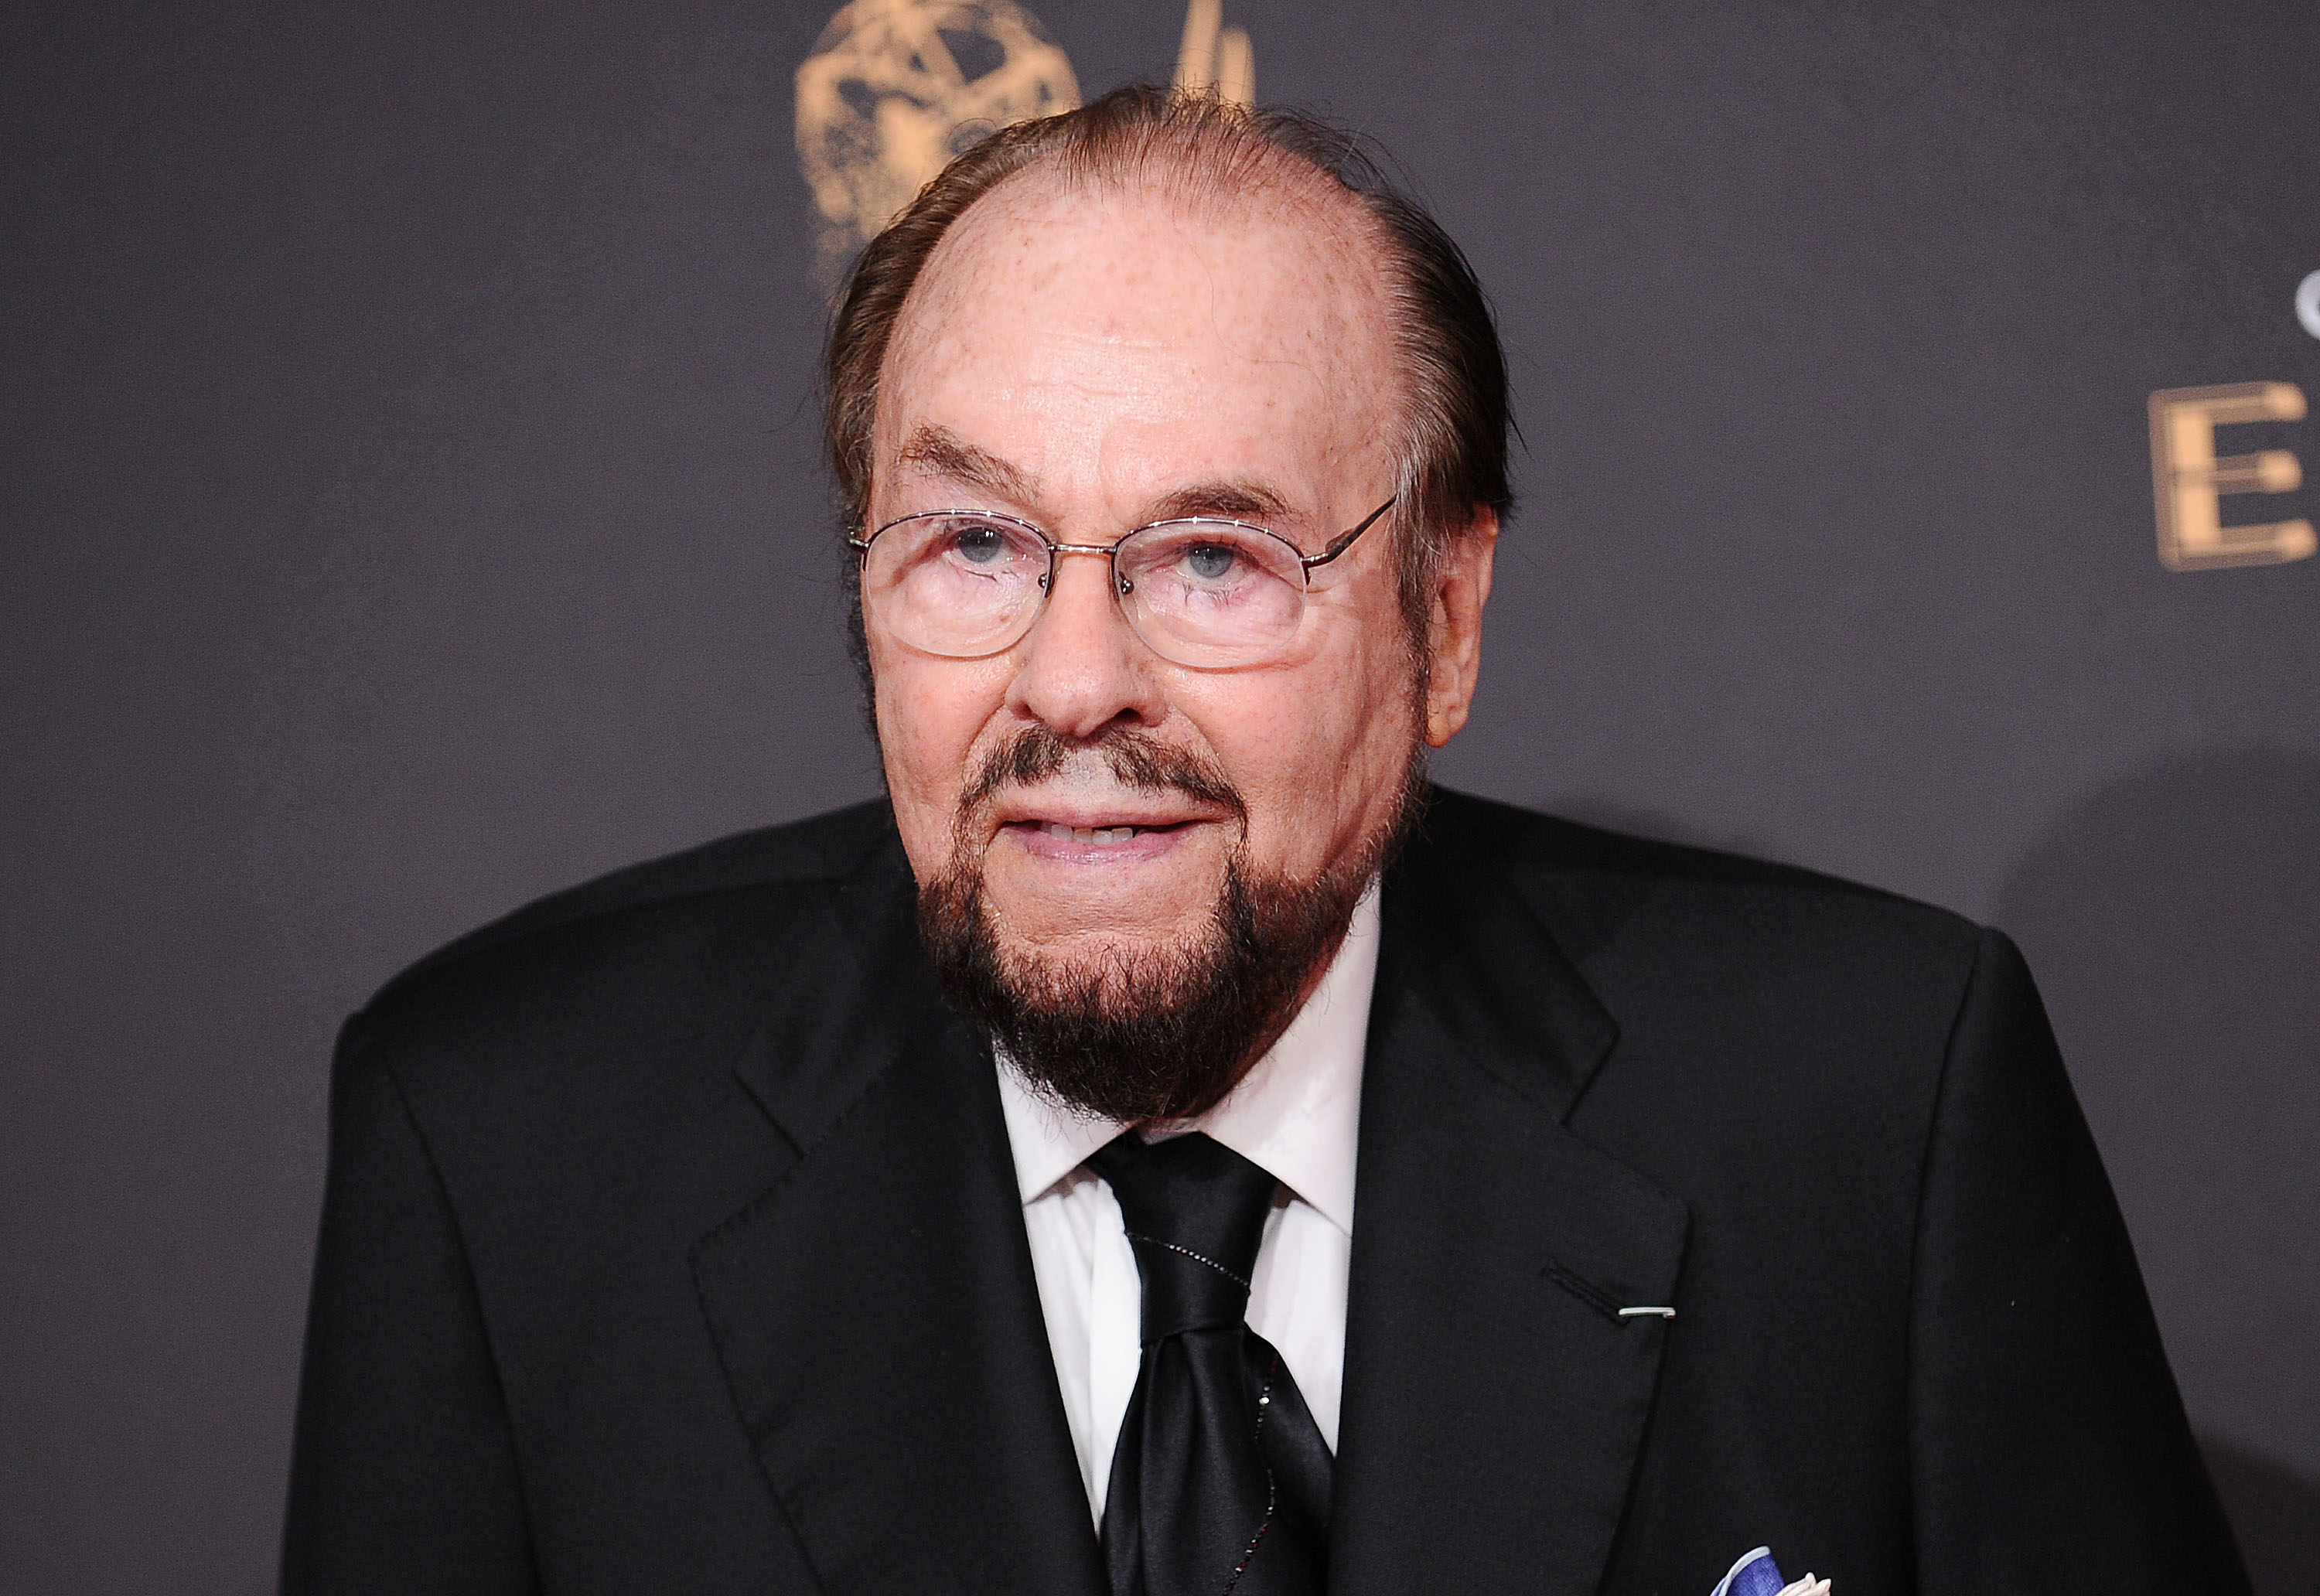 Image Credits: Getty Images | James Lipton passed away on March 2